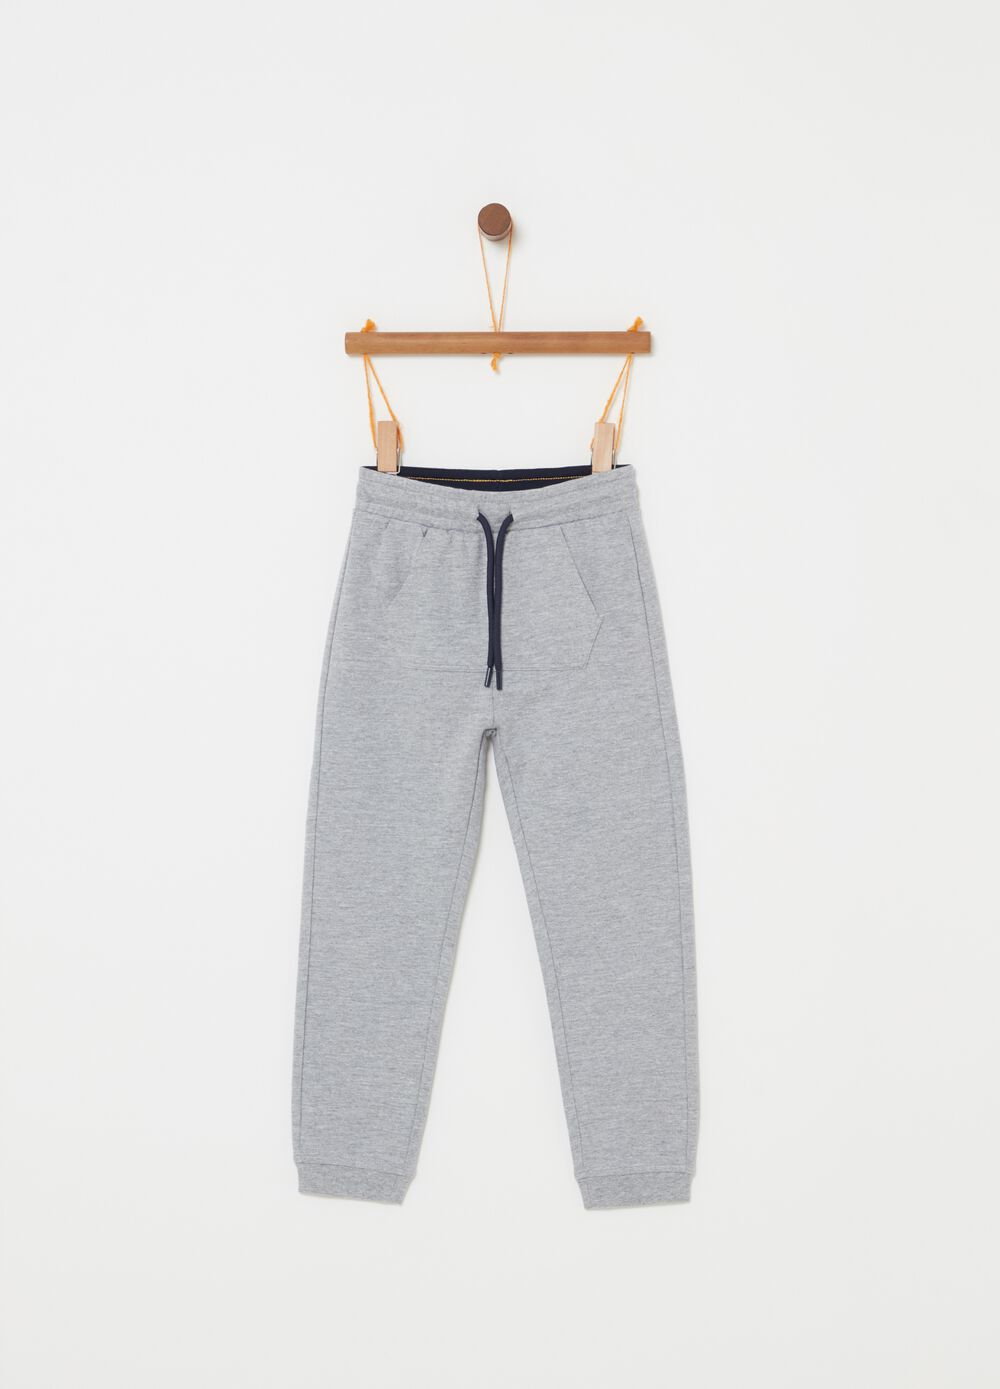 French terry mélange trousers with pocket